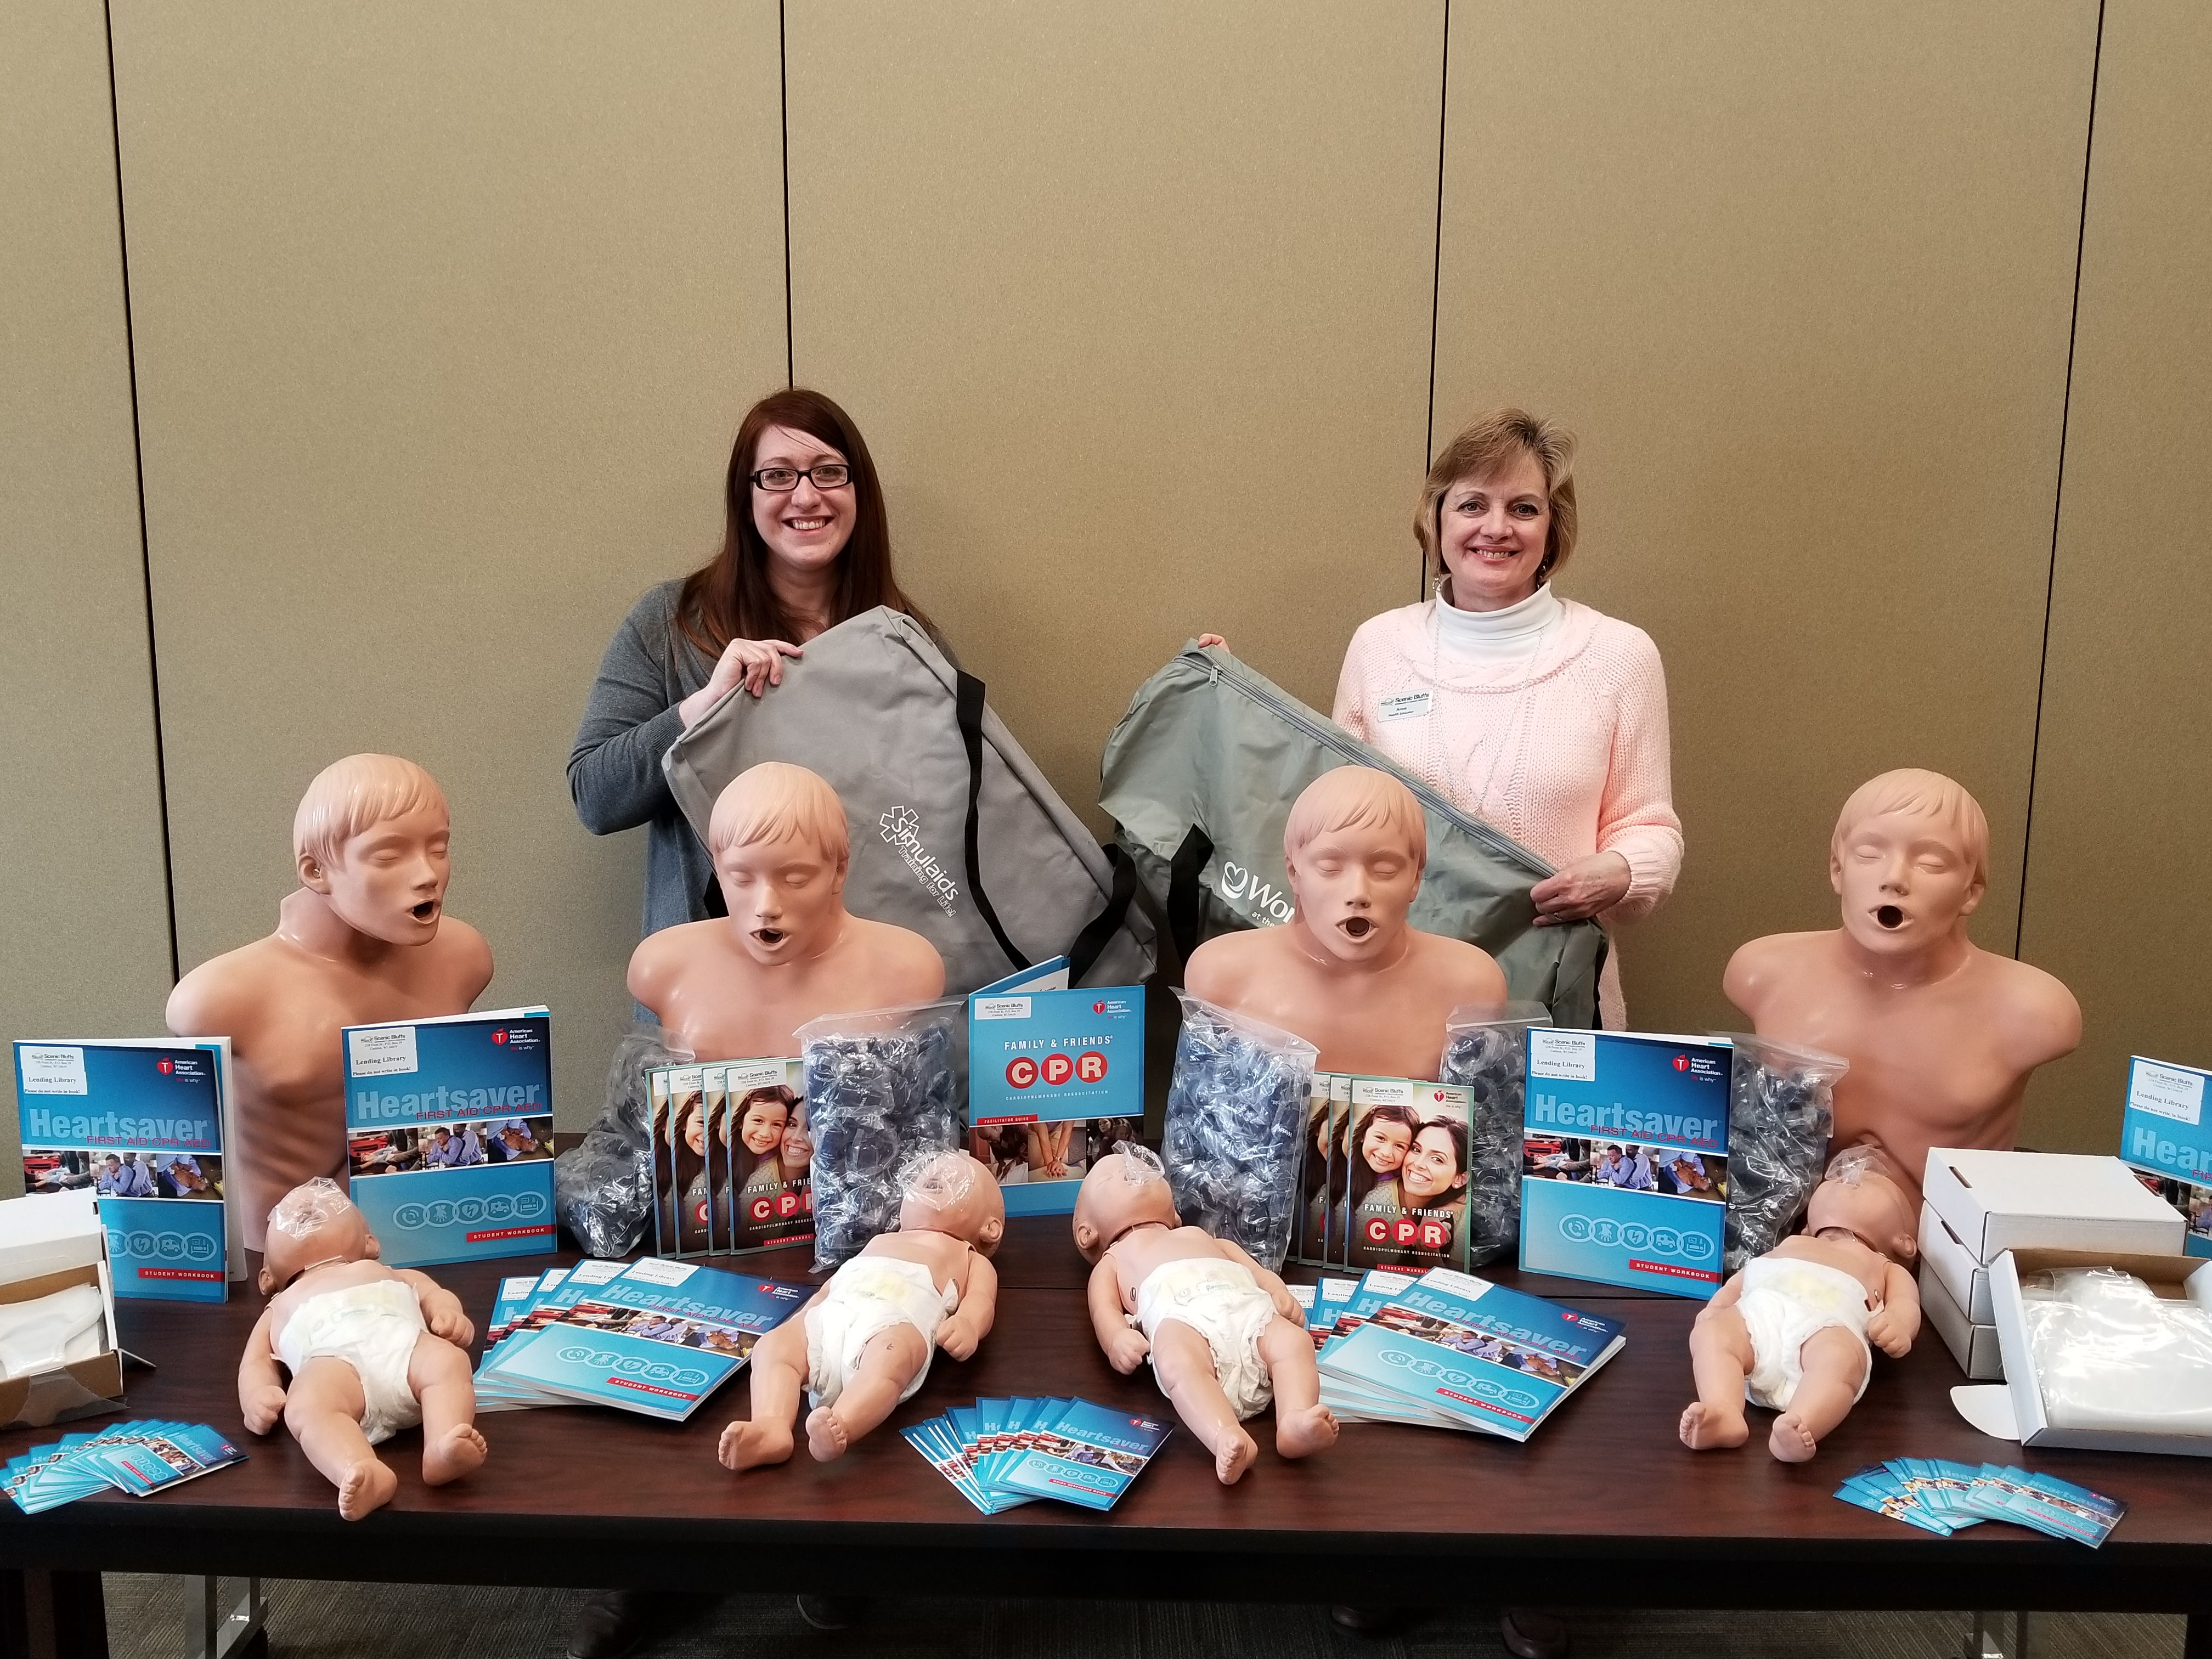 Ashley Hemmersbach and Anne Heatlh, Health Educators, pose with new cpr equipment